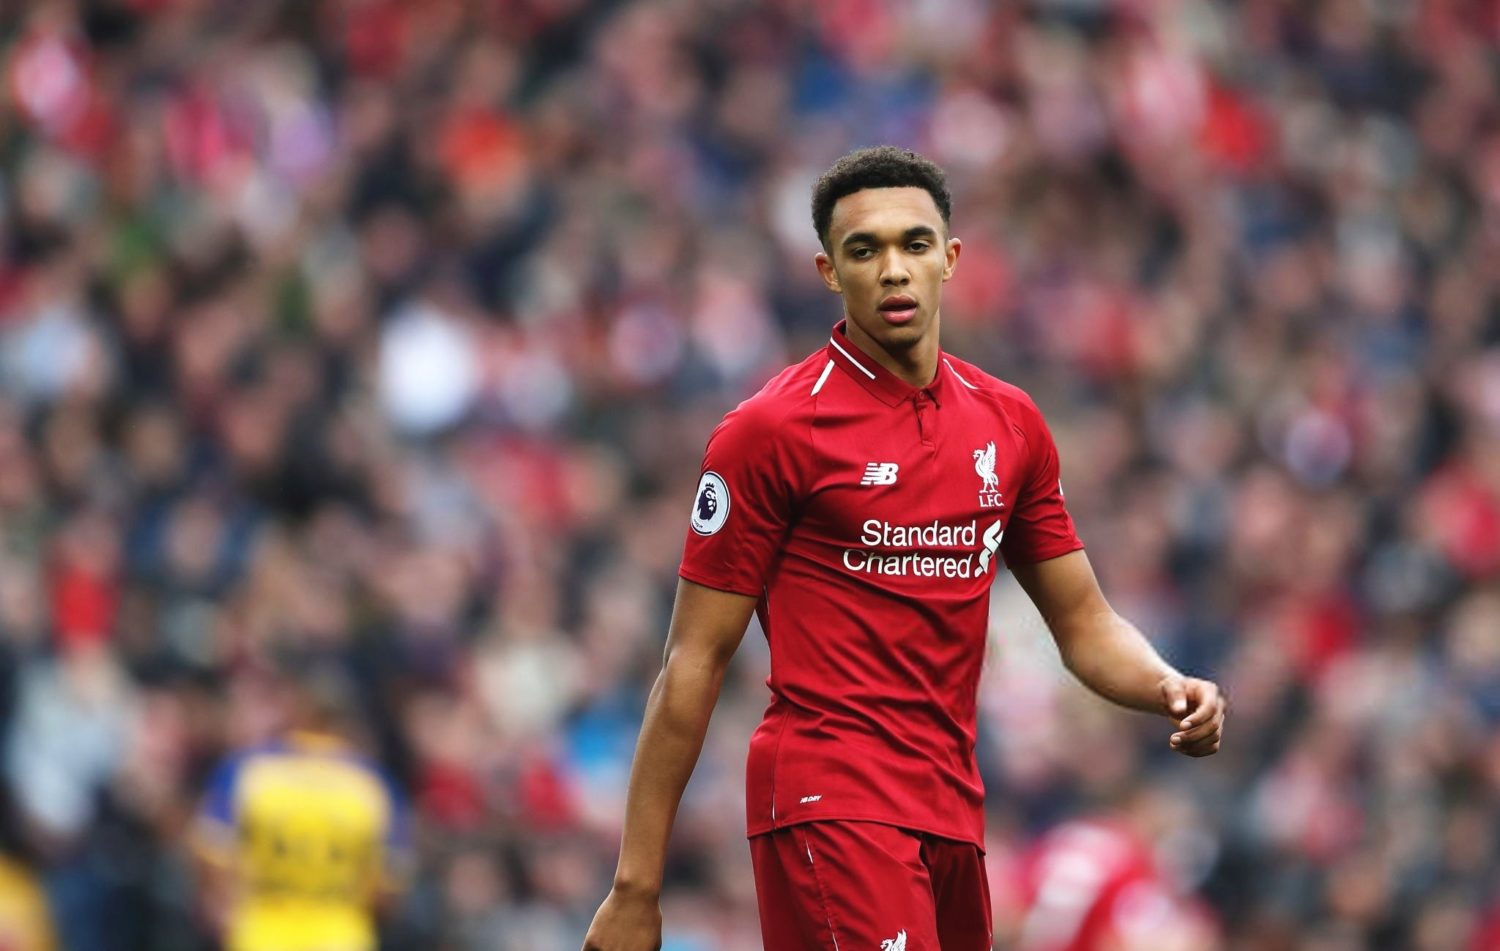 Trent Alexander-Arnold caught up in Snapchat controversy for crude messages